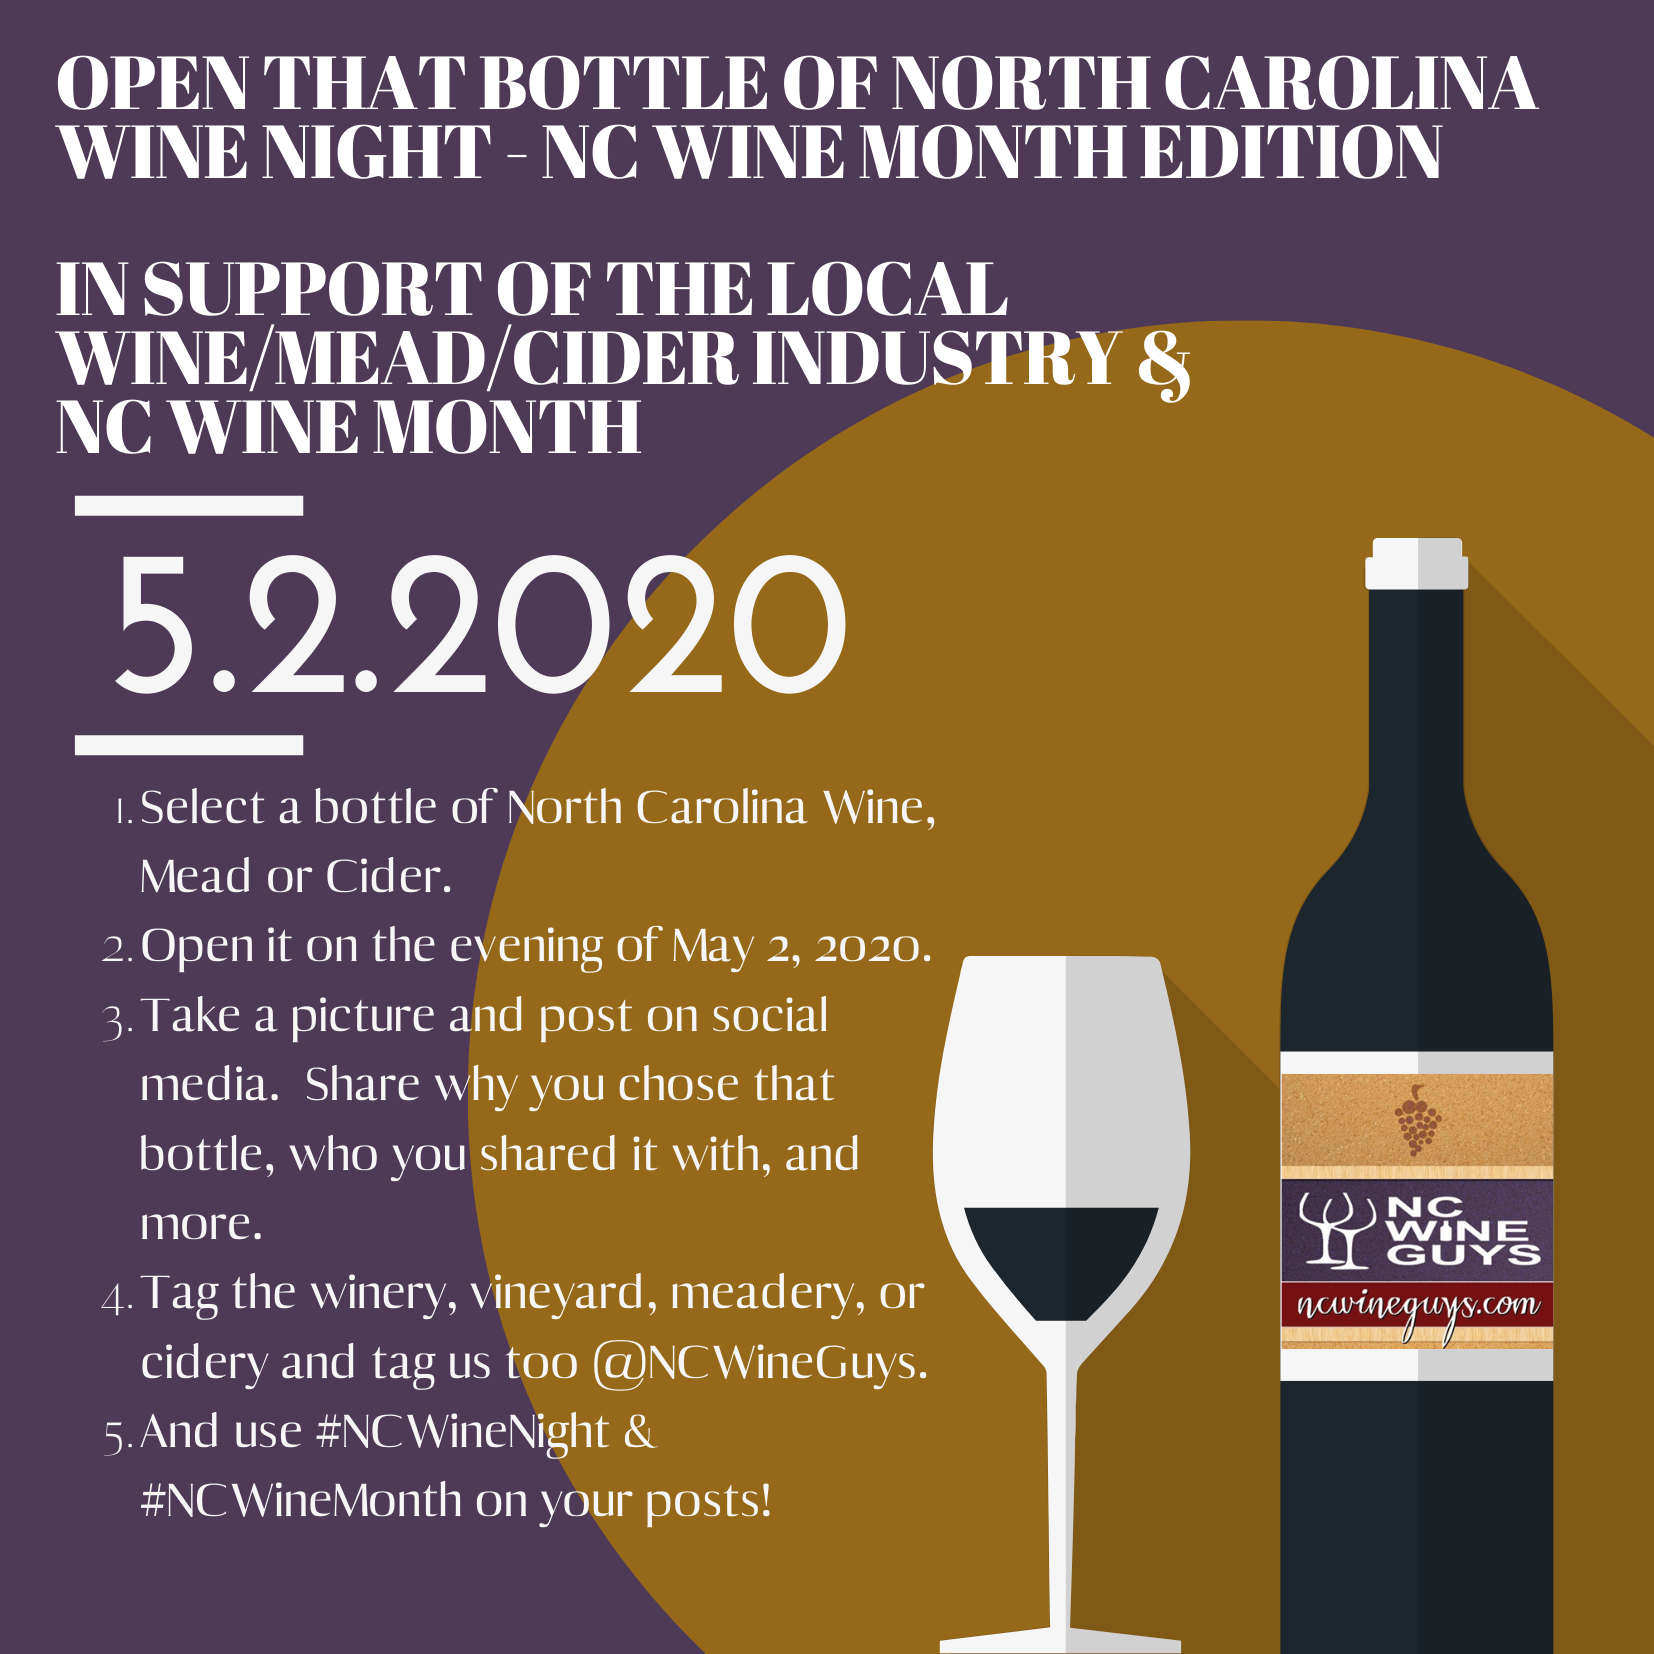 Open that Bottle of North Carolina Wine Night – NC Wine Month 2020 Edition